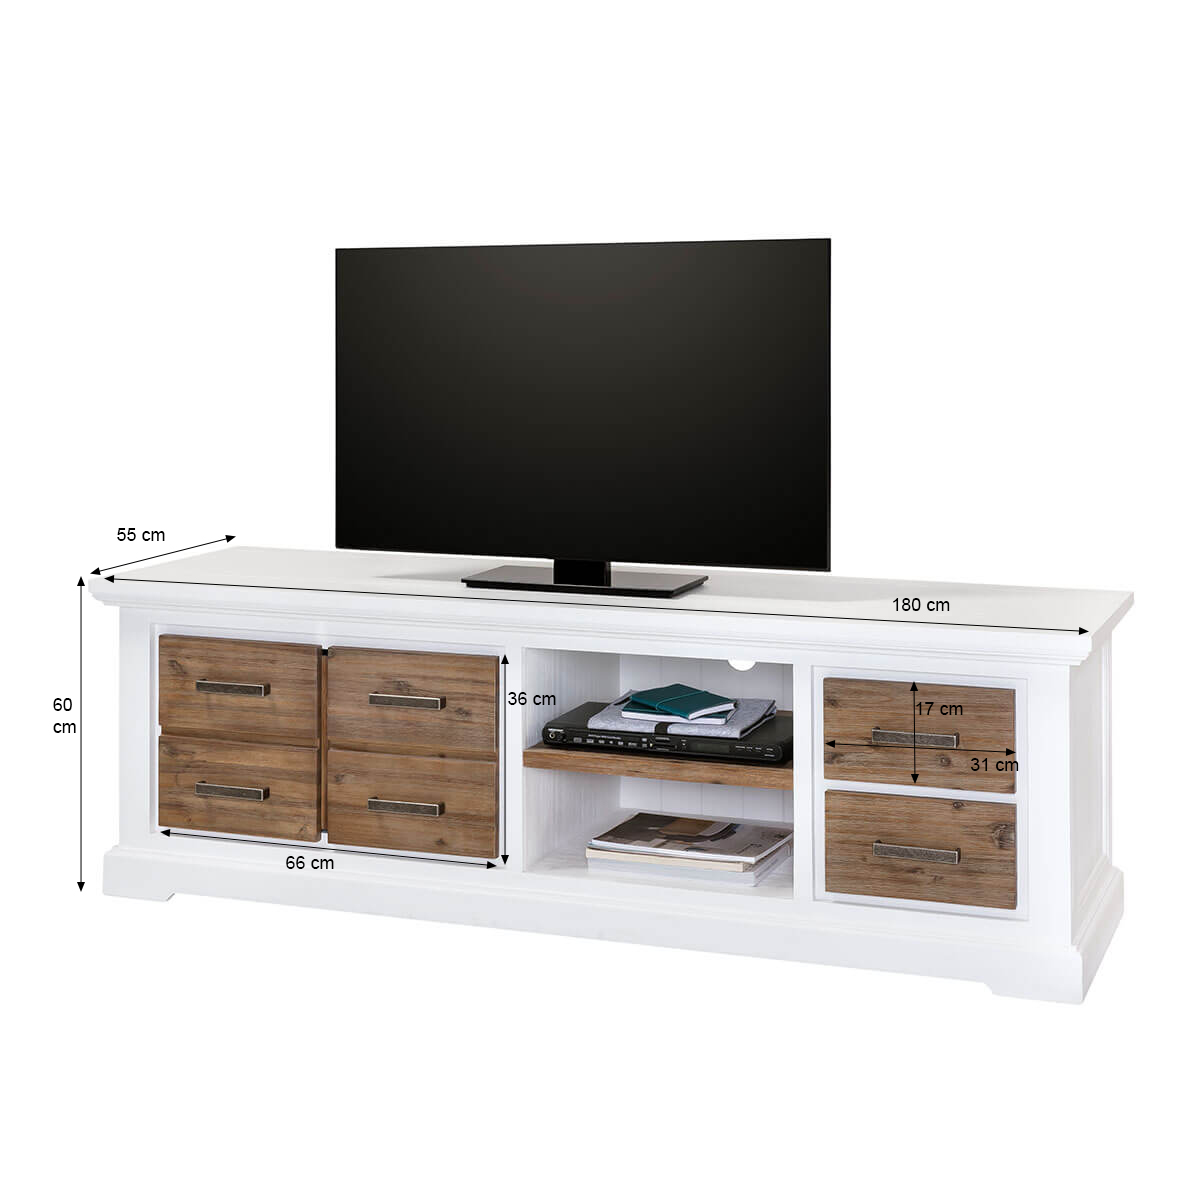 Tv Board Landhaus Tv Board Wei Landhaus Stunning Tv Board Landhaus Wei Fabulous Tv